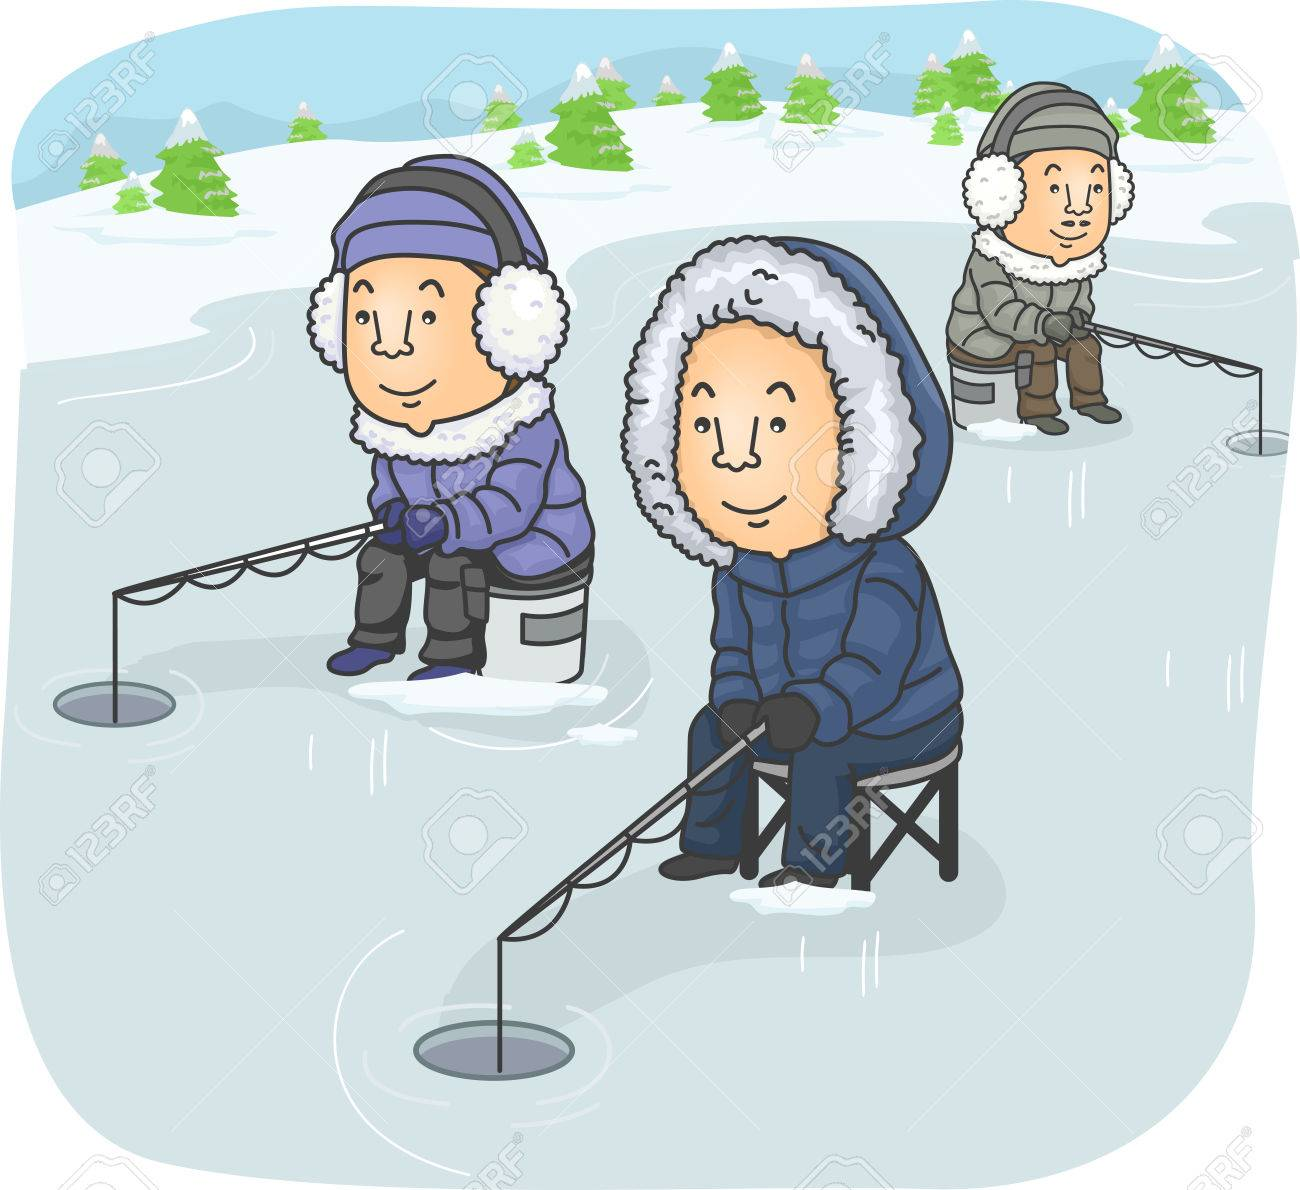 Illustration Featuring a Group of Men Ice Fishing.